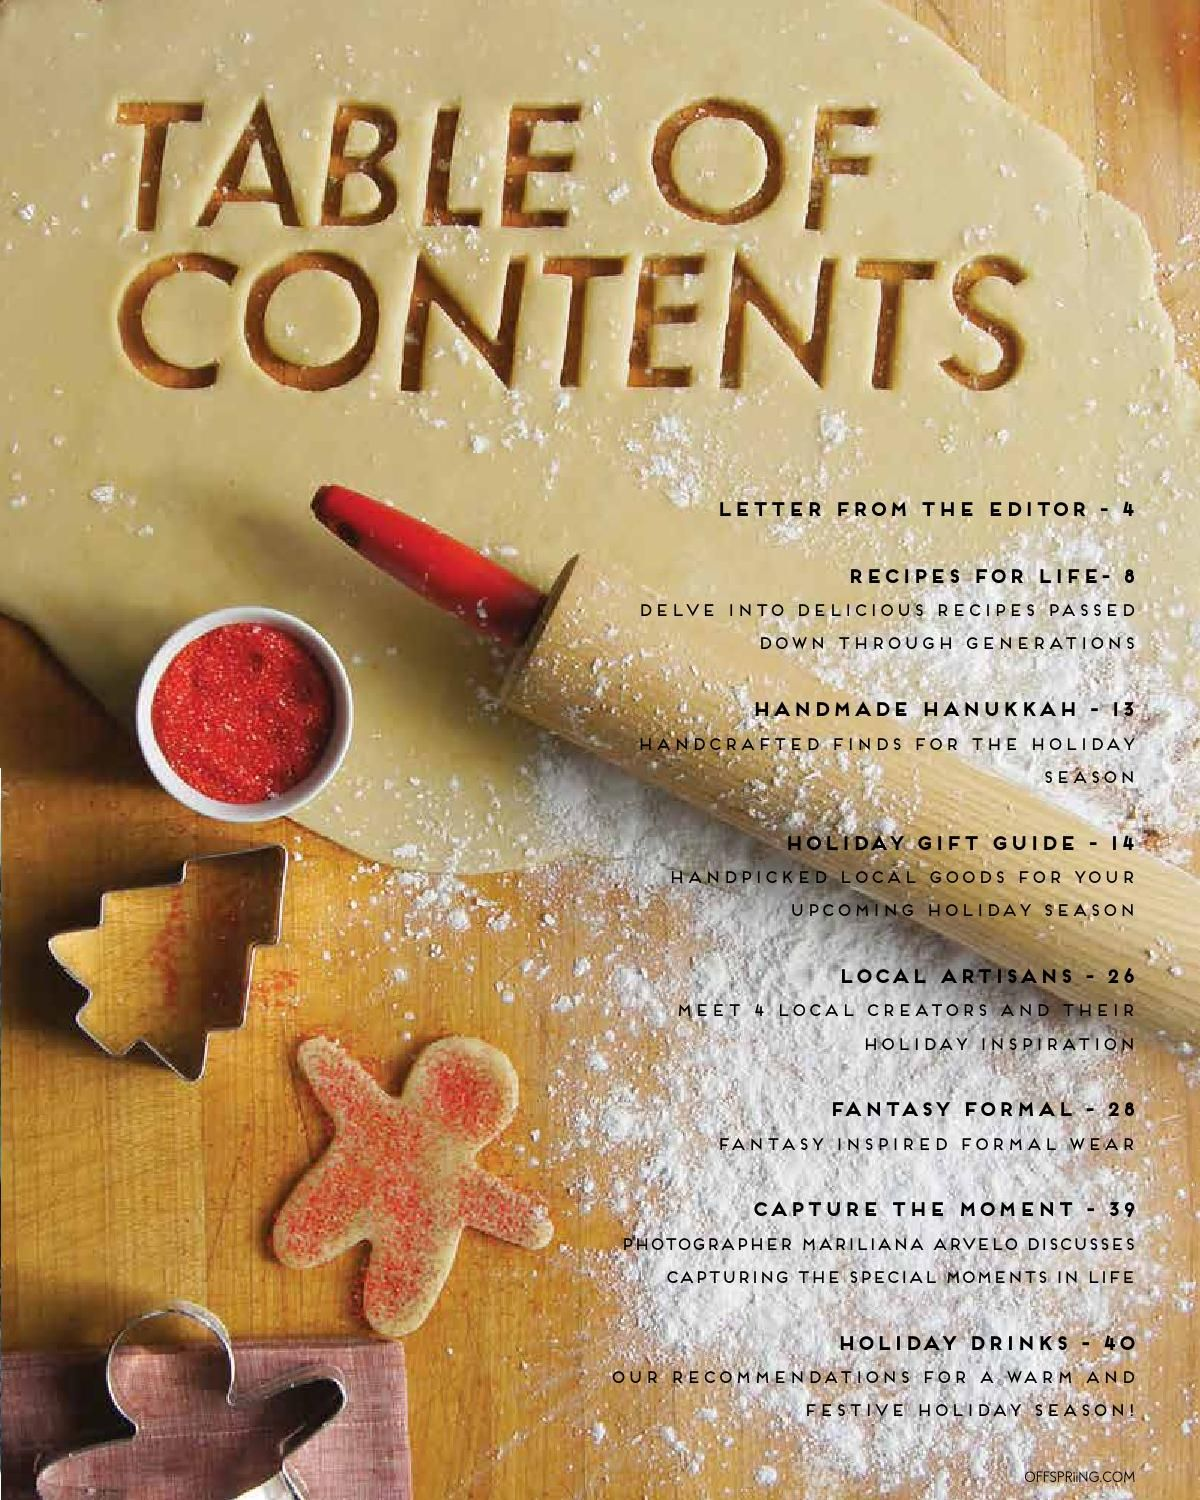 OFFSPRiiNG Magazine | Cookbook design, Table of contents ...Food Magazine Table Of Contents